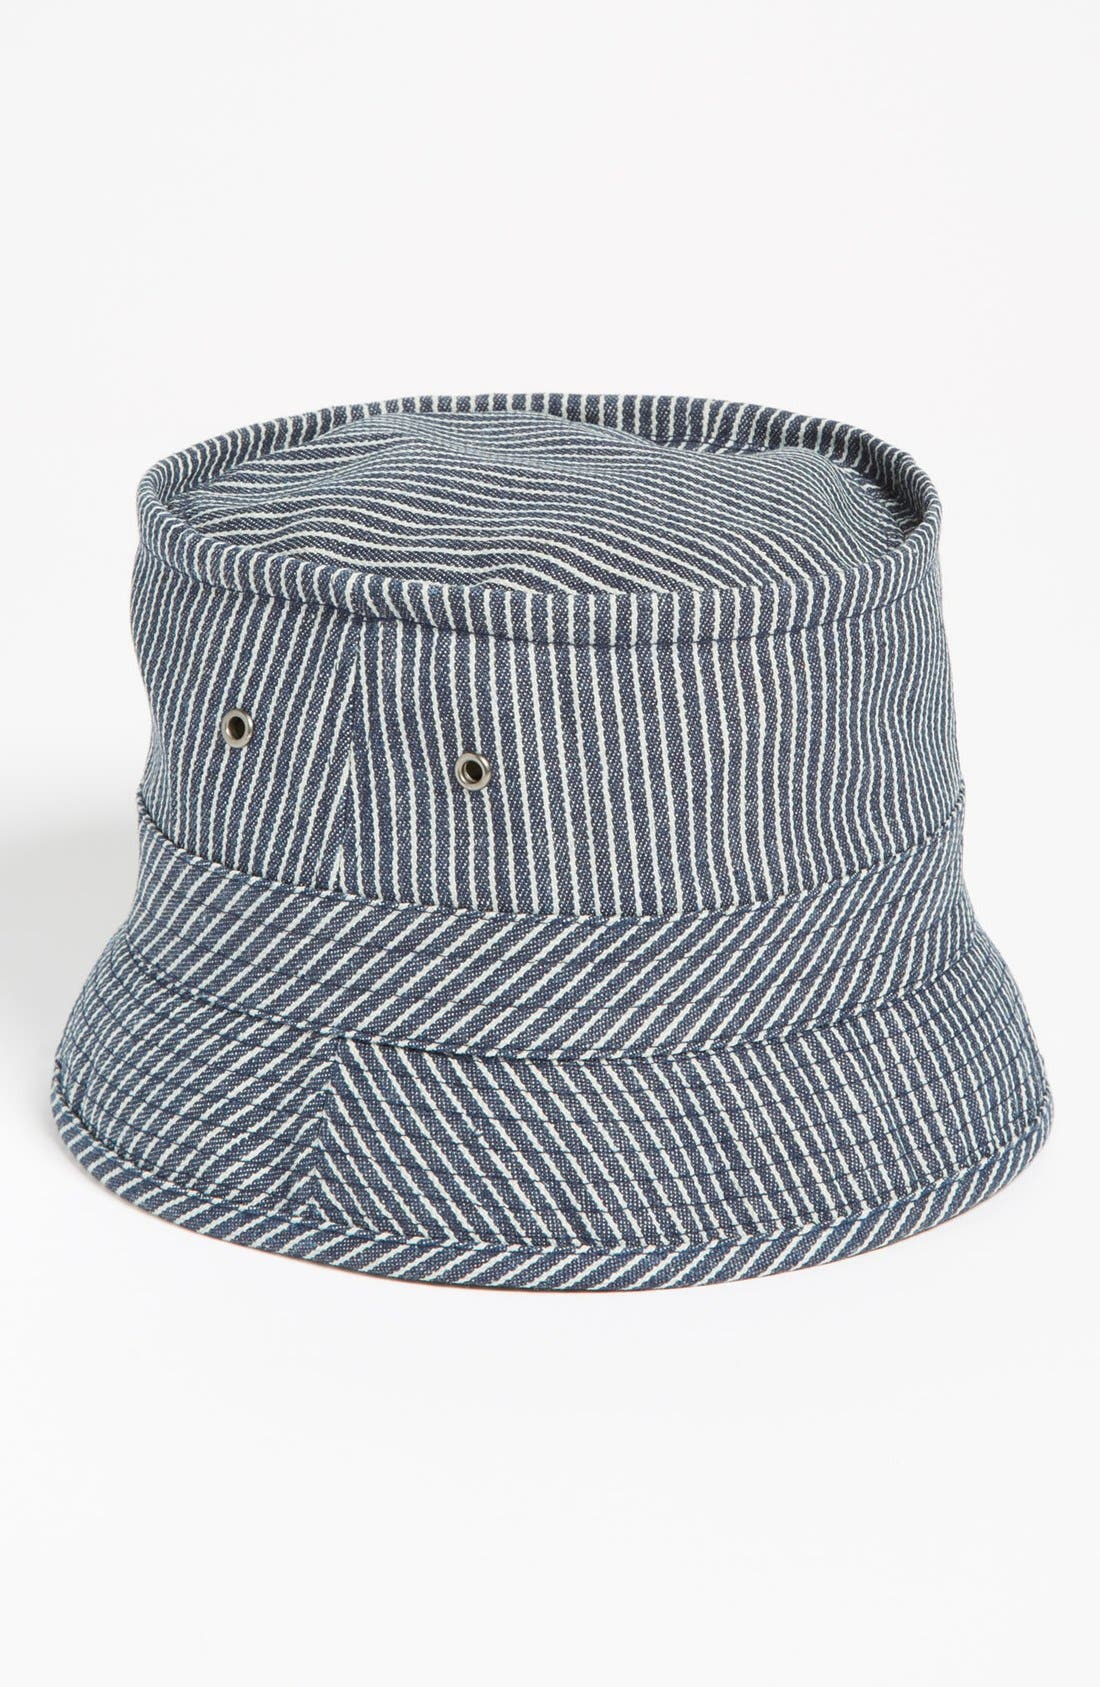 Alternate Image 1 Selected - The Accessory Collective Bucket Hat (Big Boys)